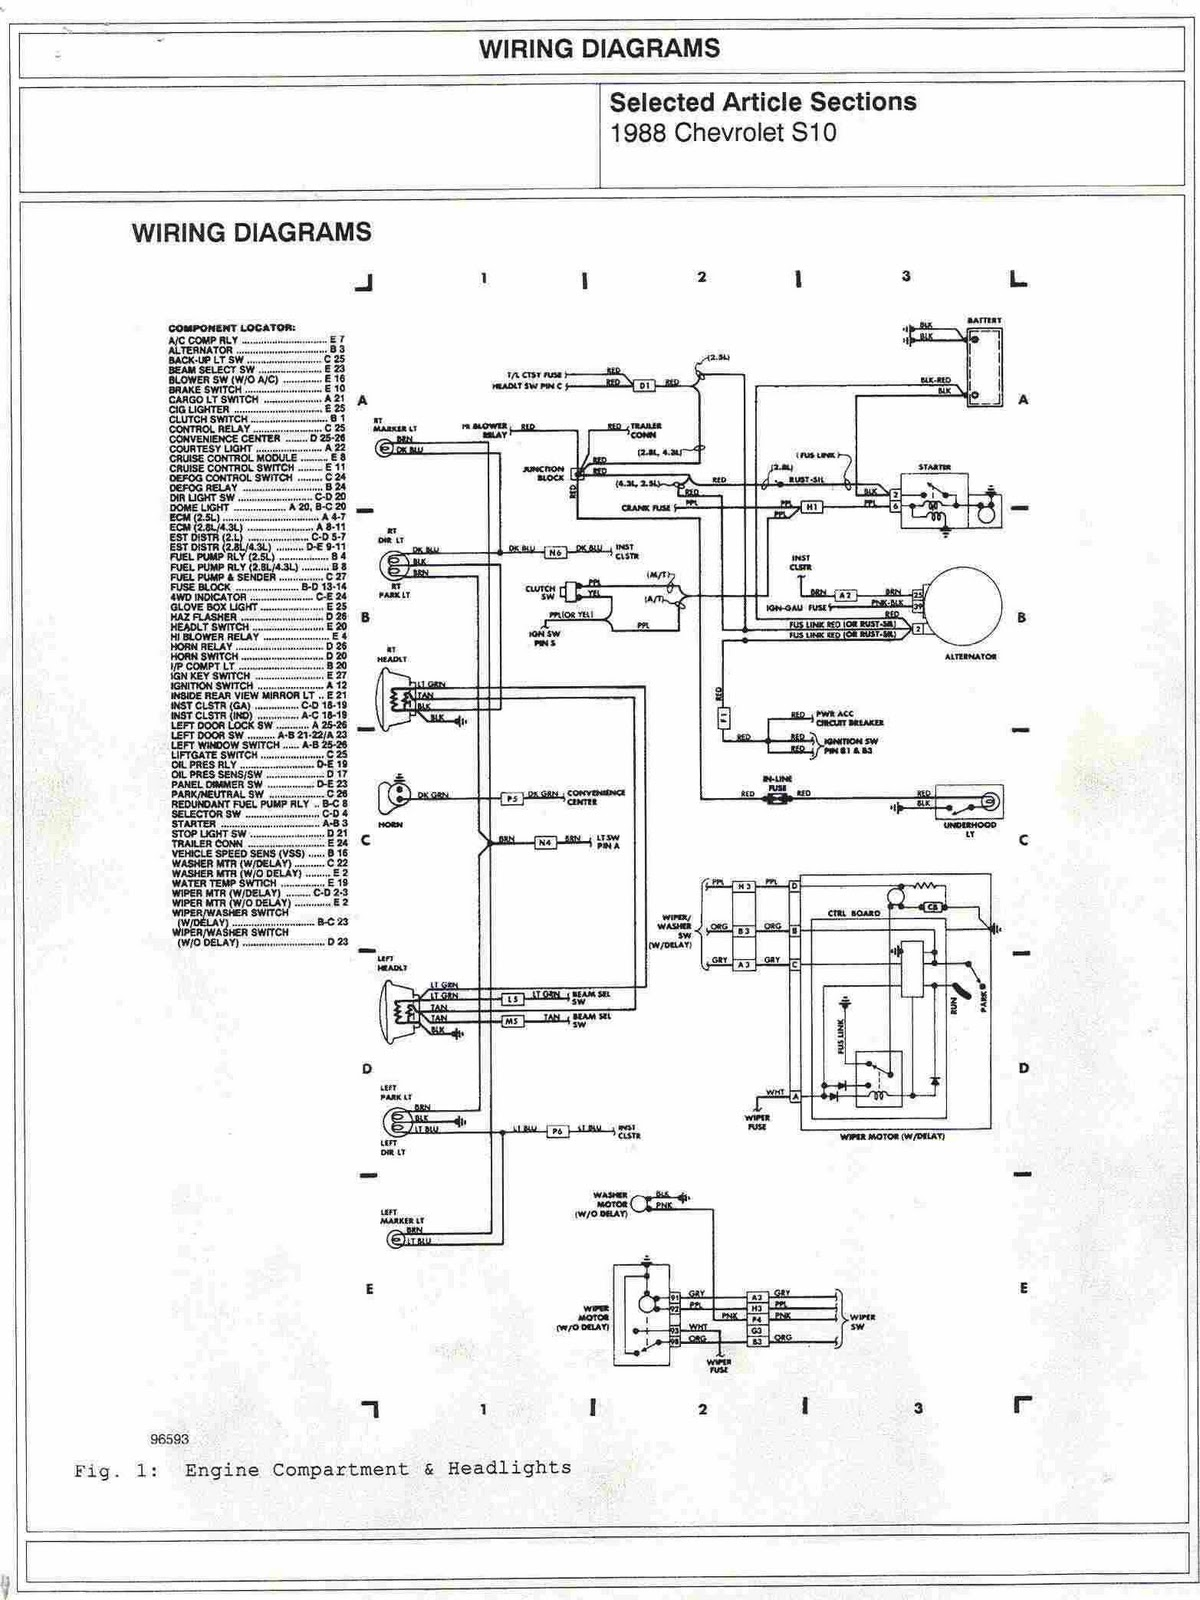 1988+Chevrolet+S10+Engine+Compartment+and+Headlights+Wiring+Diagrams 95 s10 wiring diagram 95 tahoe wiring diagram \u2022 wiring diagrams 2006 Dodge Ram Tail Light Wiring Diagram at n-0.co